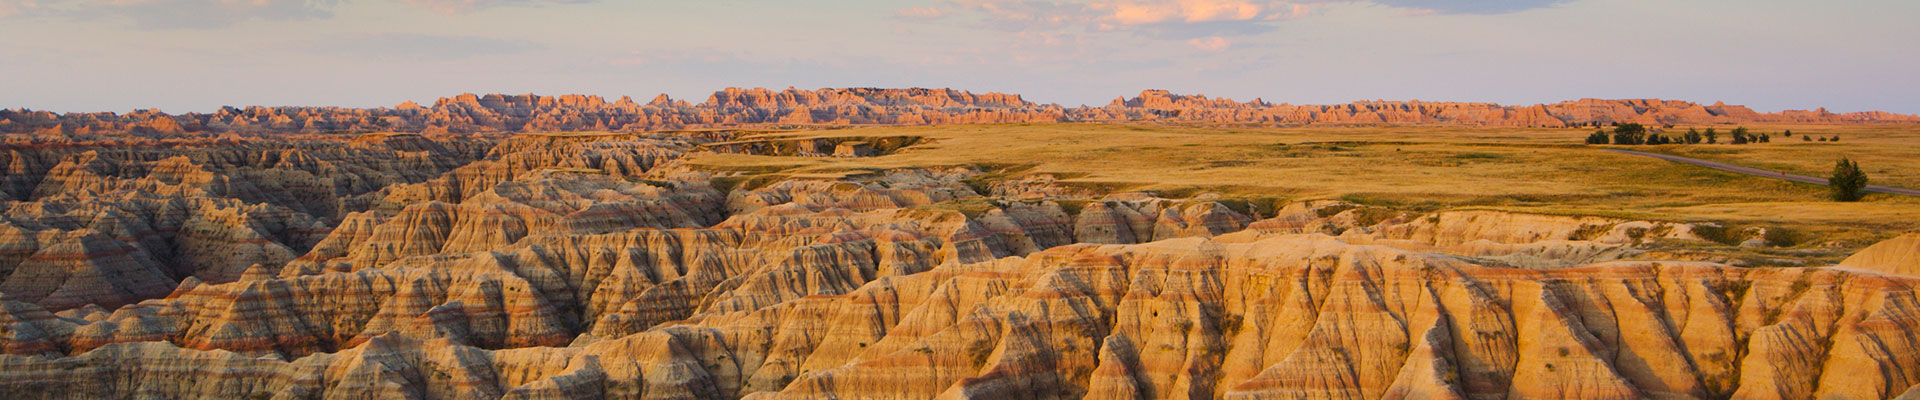 Fantasy RV Tours: 7 Day Black Hills and Badlands Rally (07UBHW-061622)